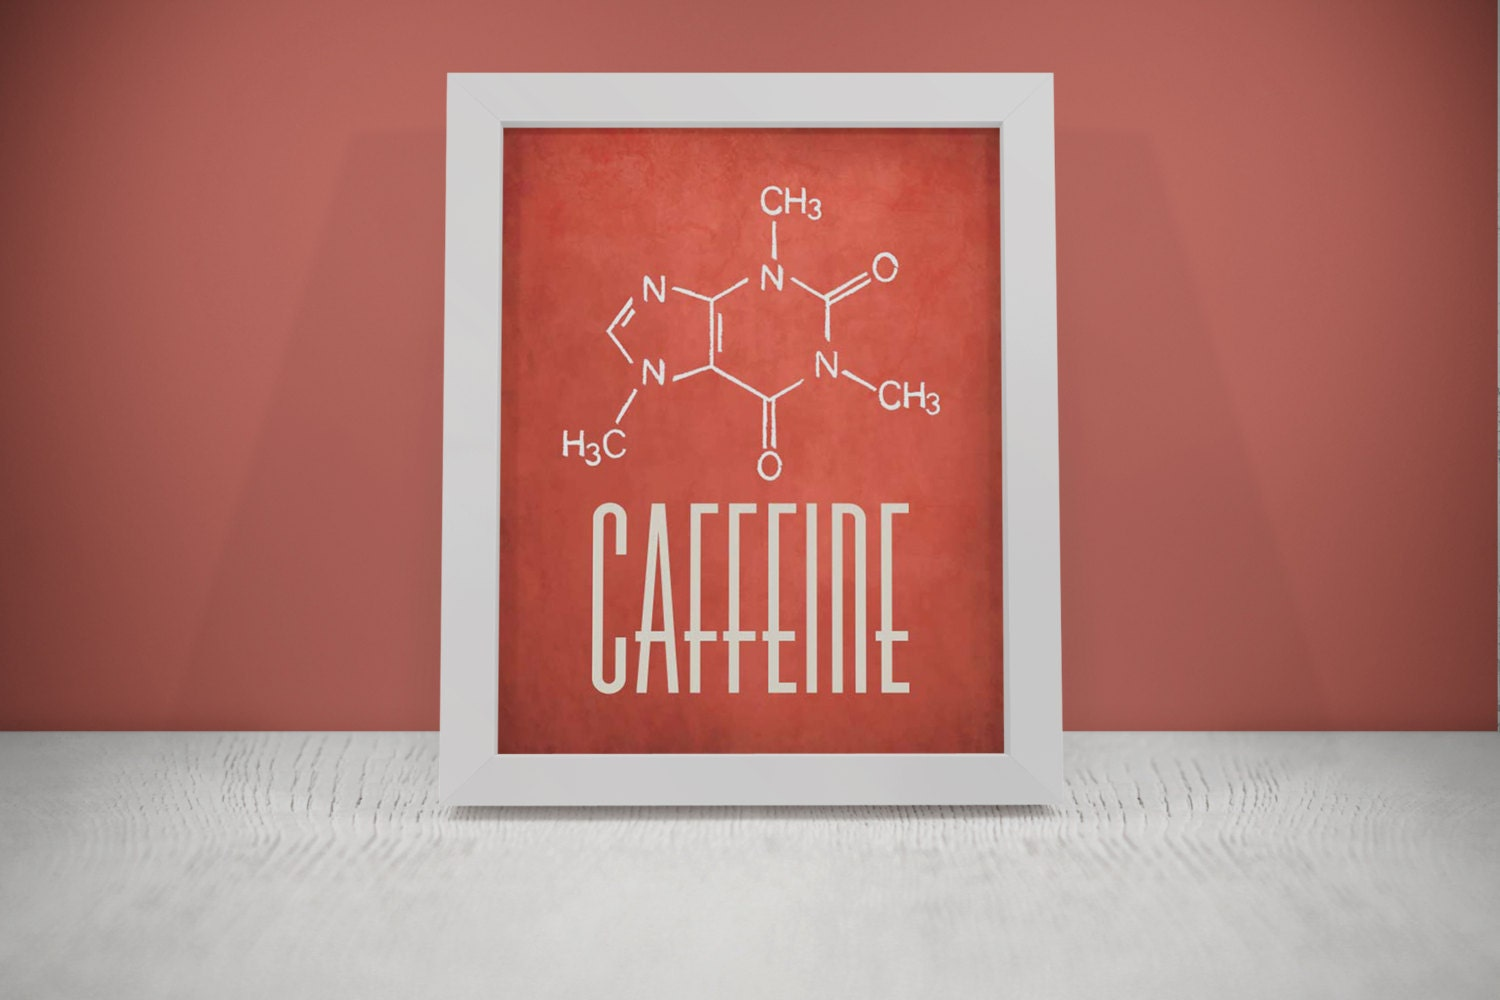 Red caffeine molecule postercoffee kitchen wall art kitchen for Red kitchen wall art